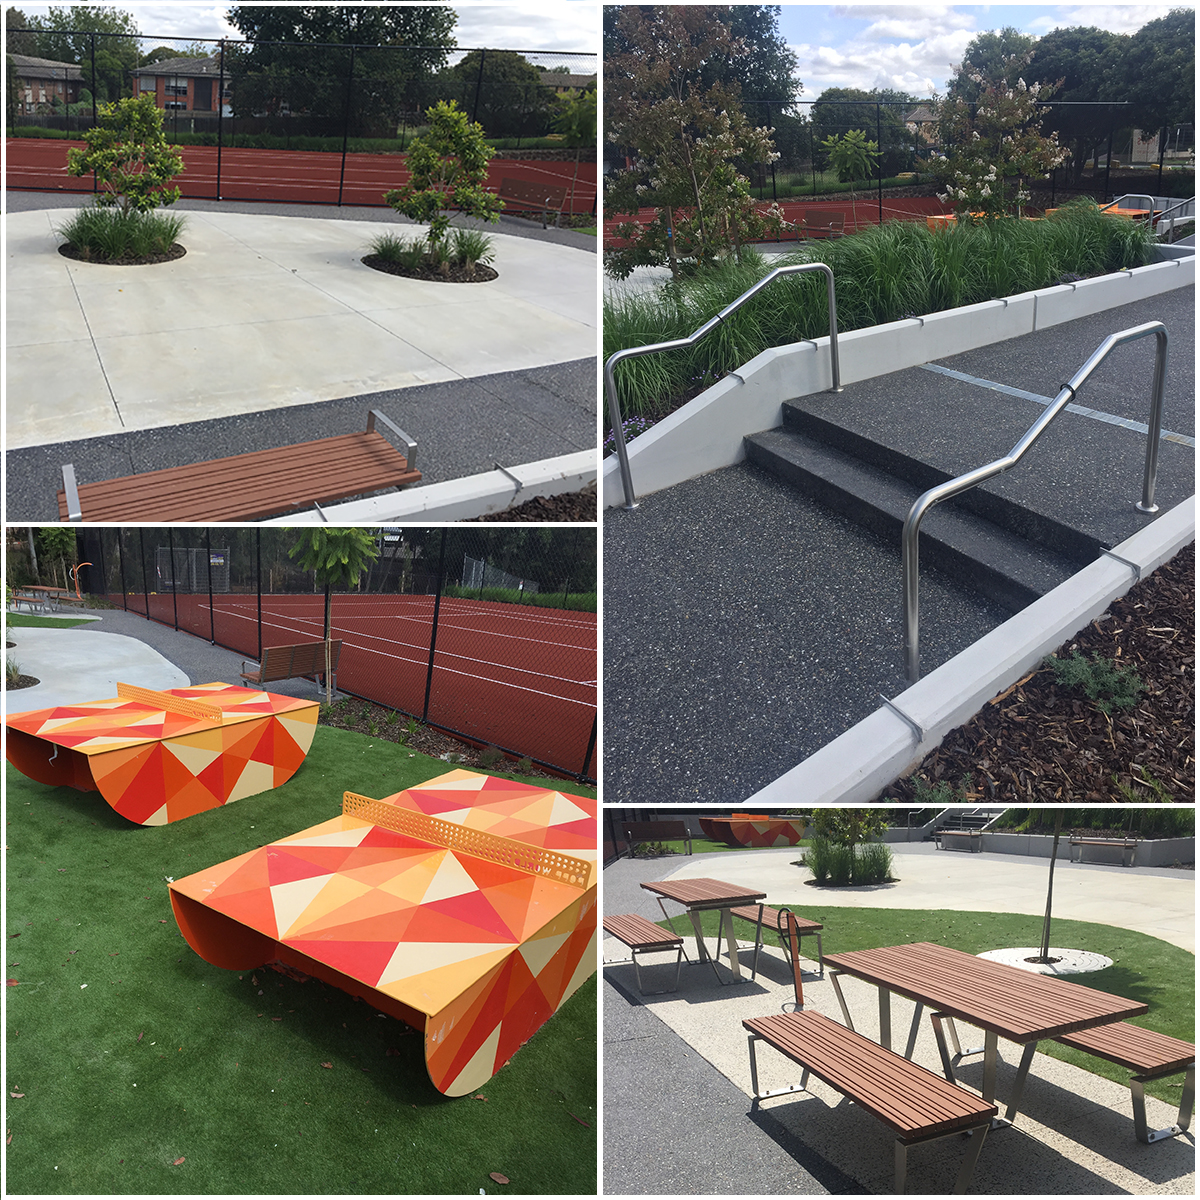 Commercial Landscaping of Public Spaces